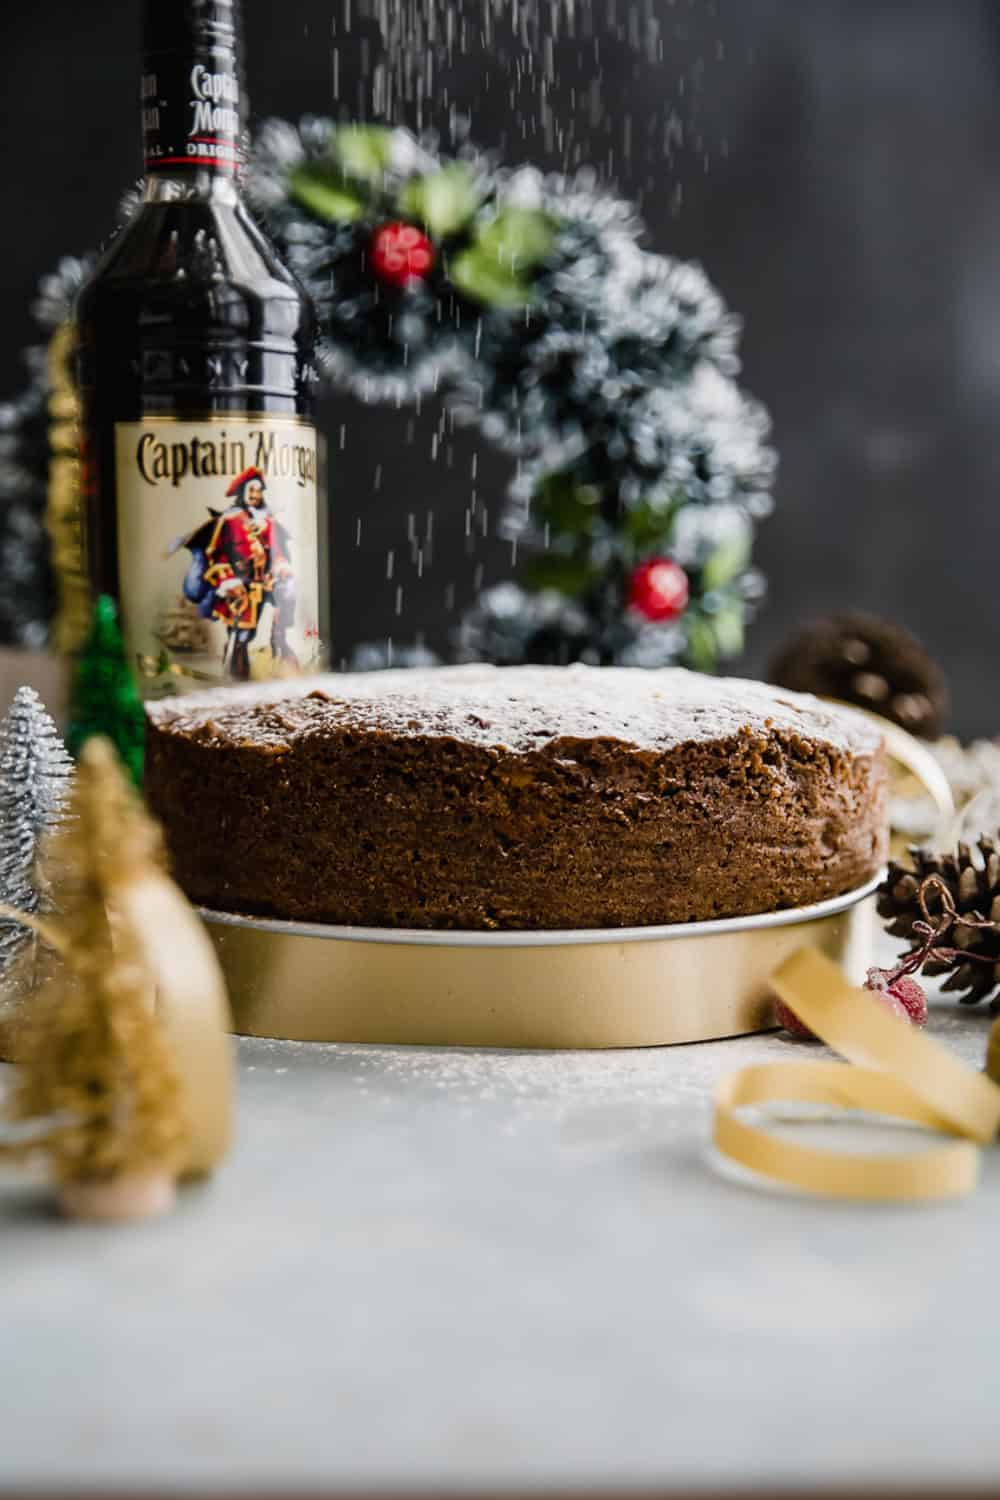 Last minute plum cake or christmas fruit cake set up on the table for slicing